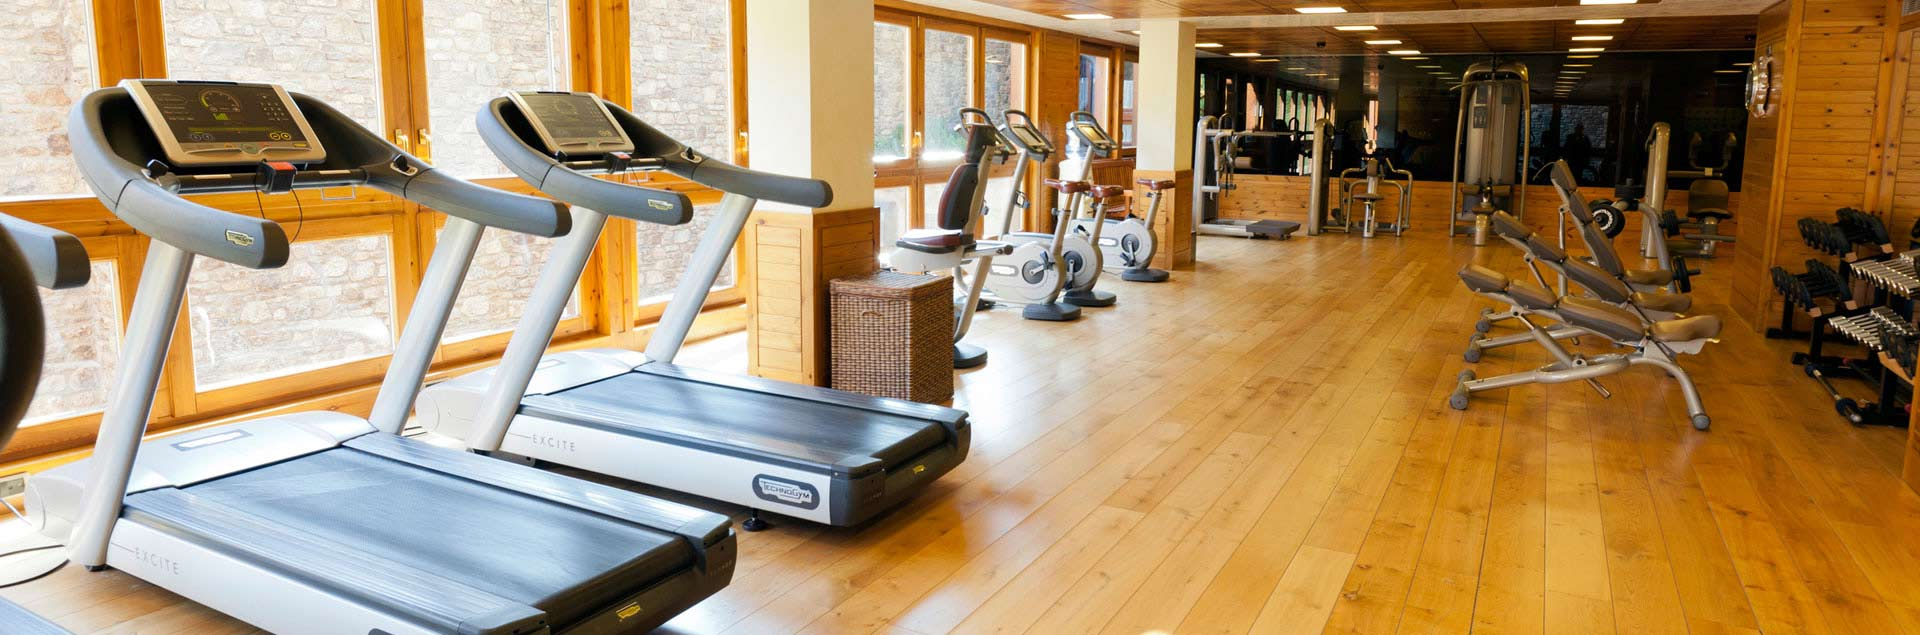 4 & 5 star hotels in Soldeu with included gym